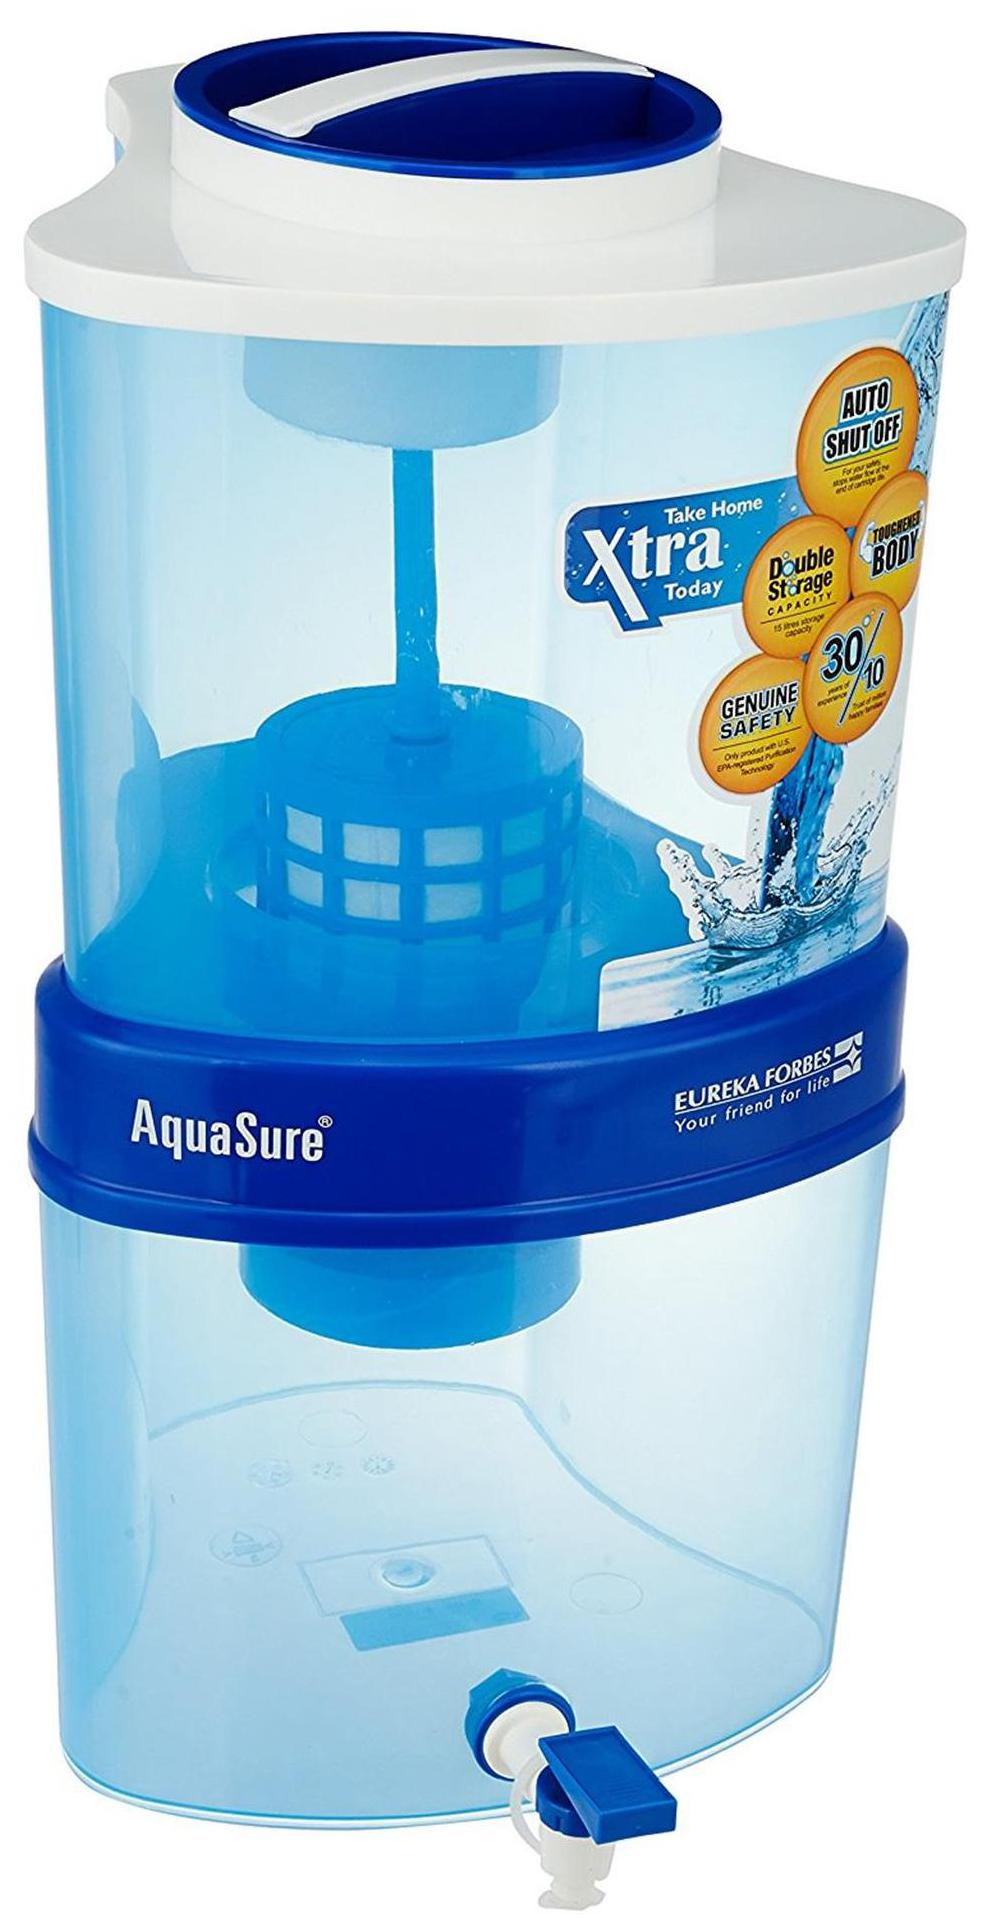 Eureka Forbes Aquasure from Aquaguard Xtra Tuff 15 Ltrs 4 Stage Purification Water Purifier (White & Blue)